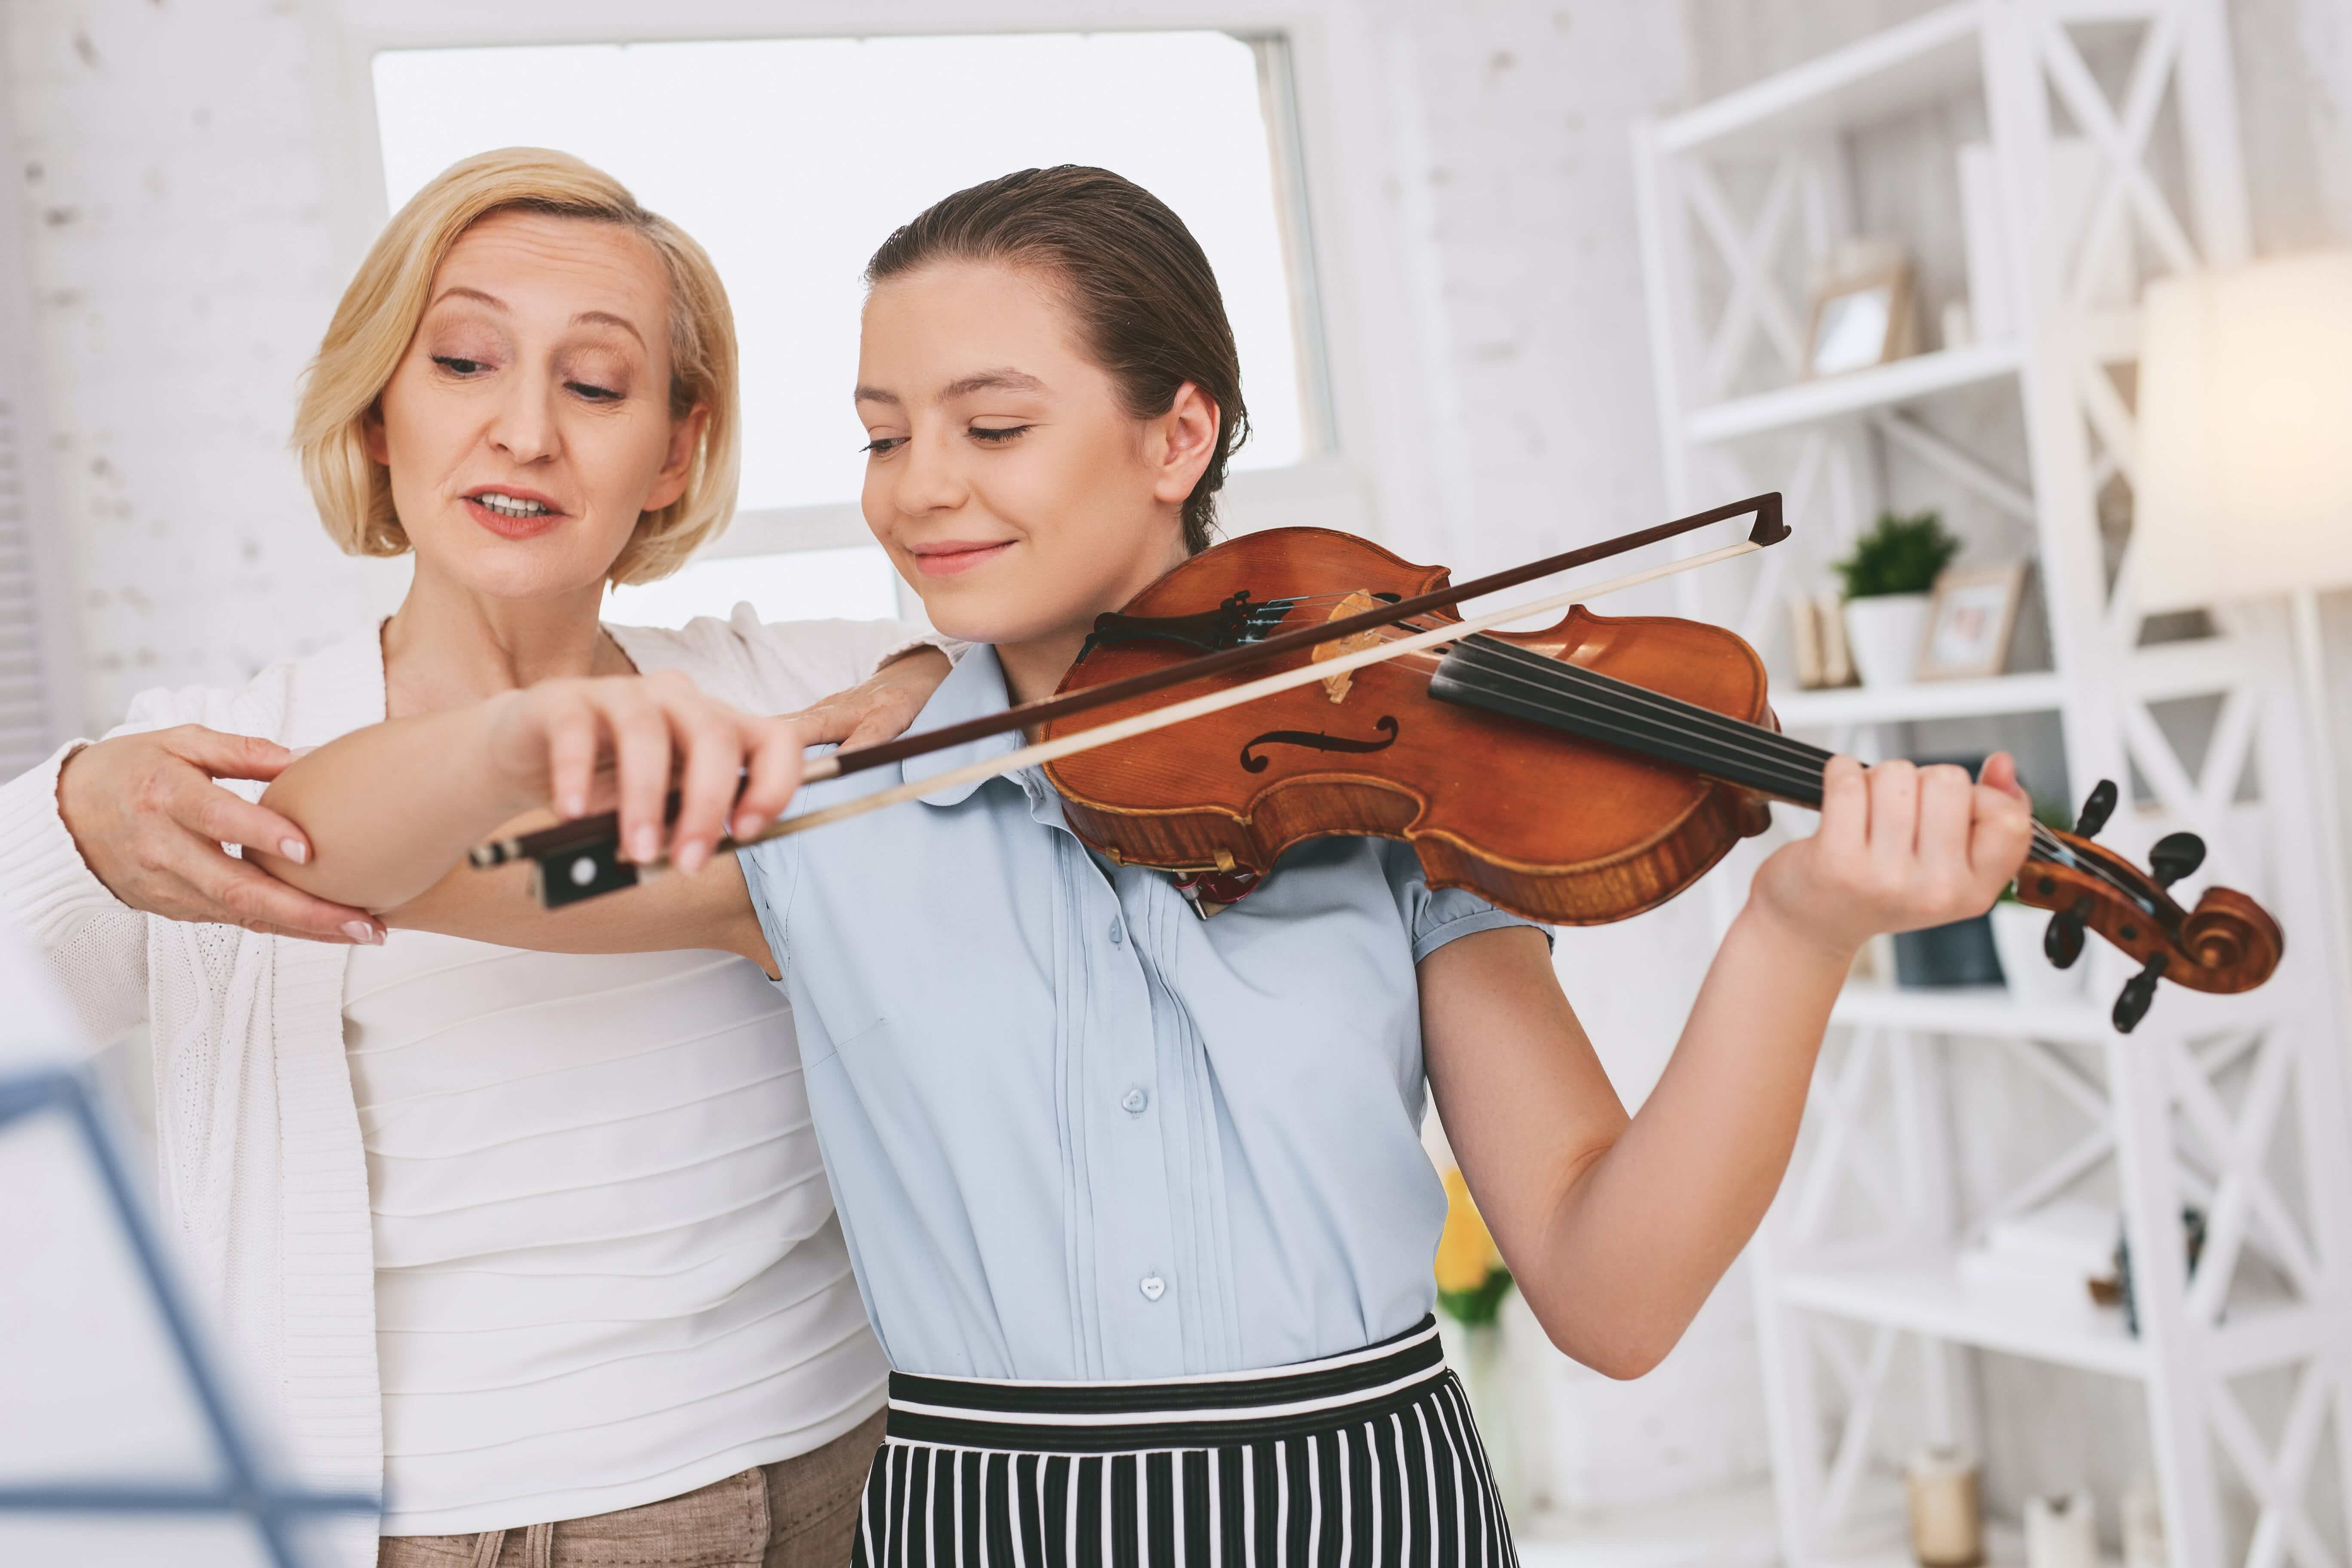 Instructor teaching her student Violin lessons